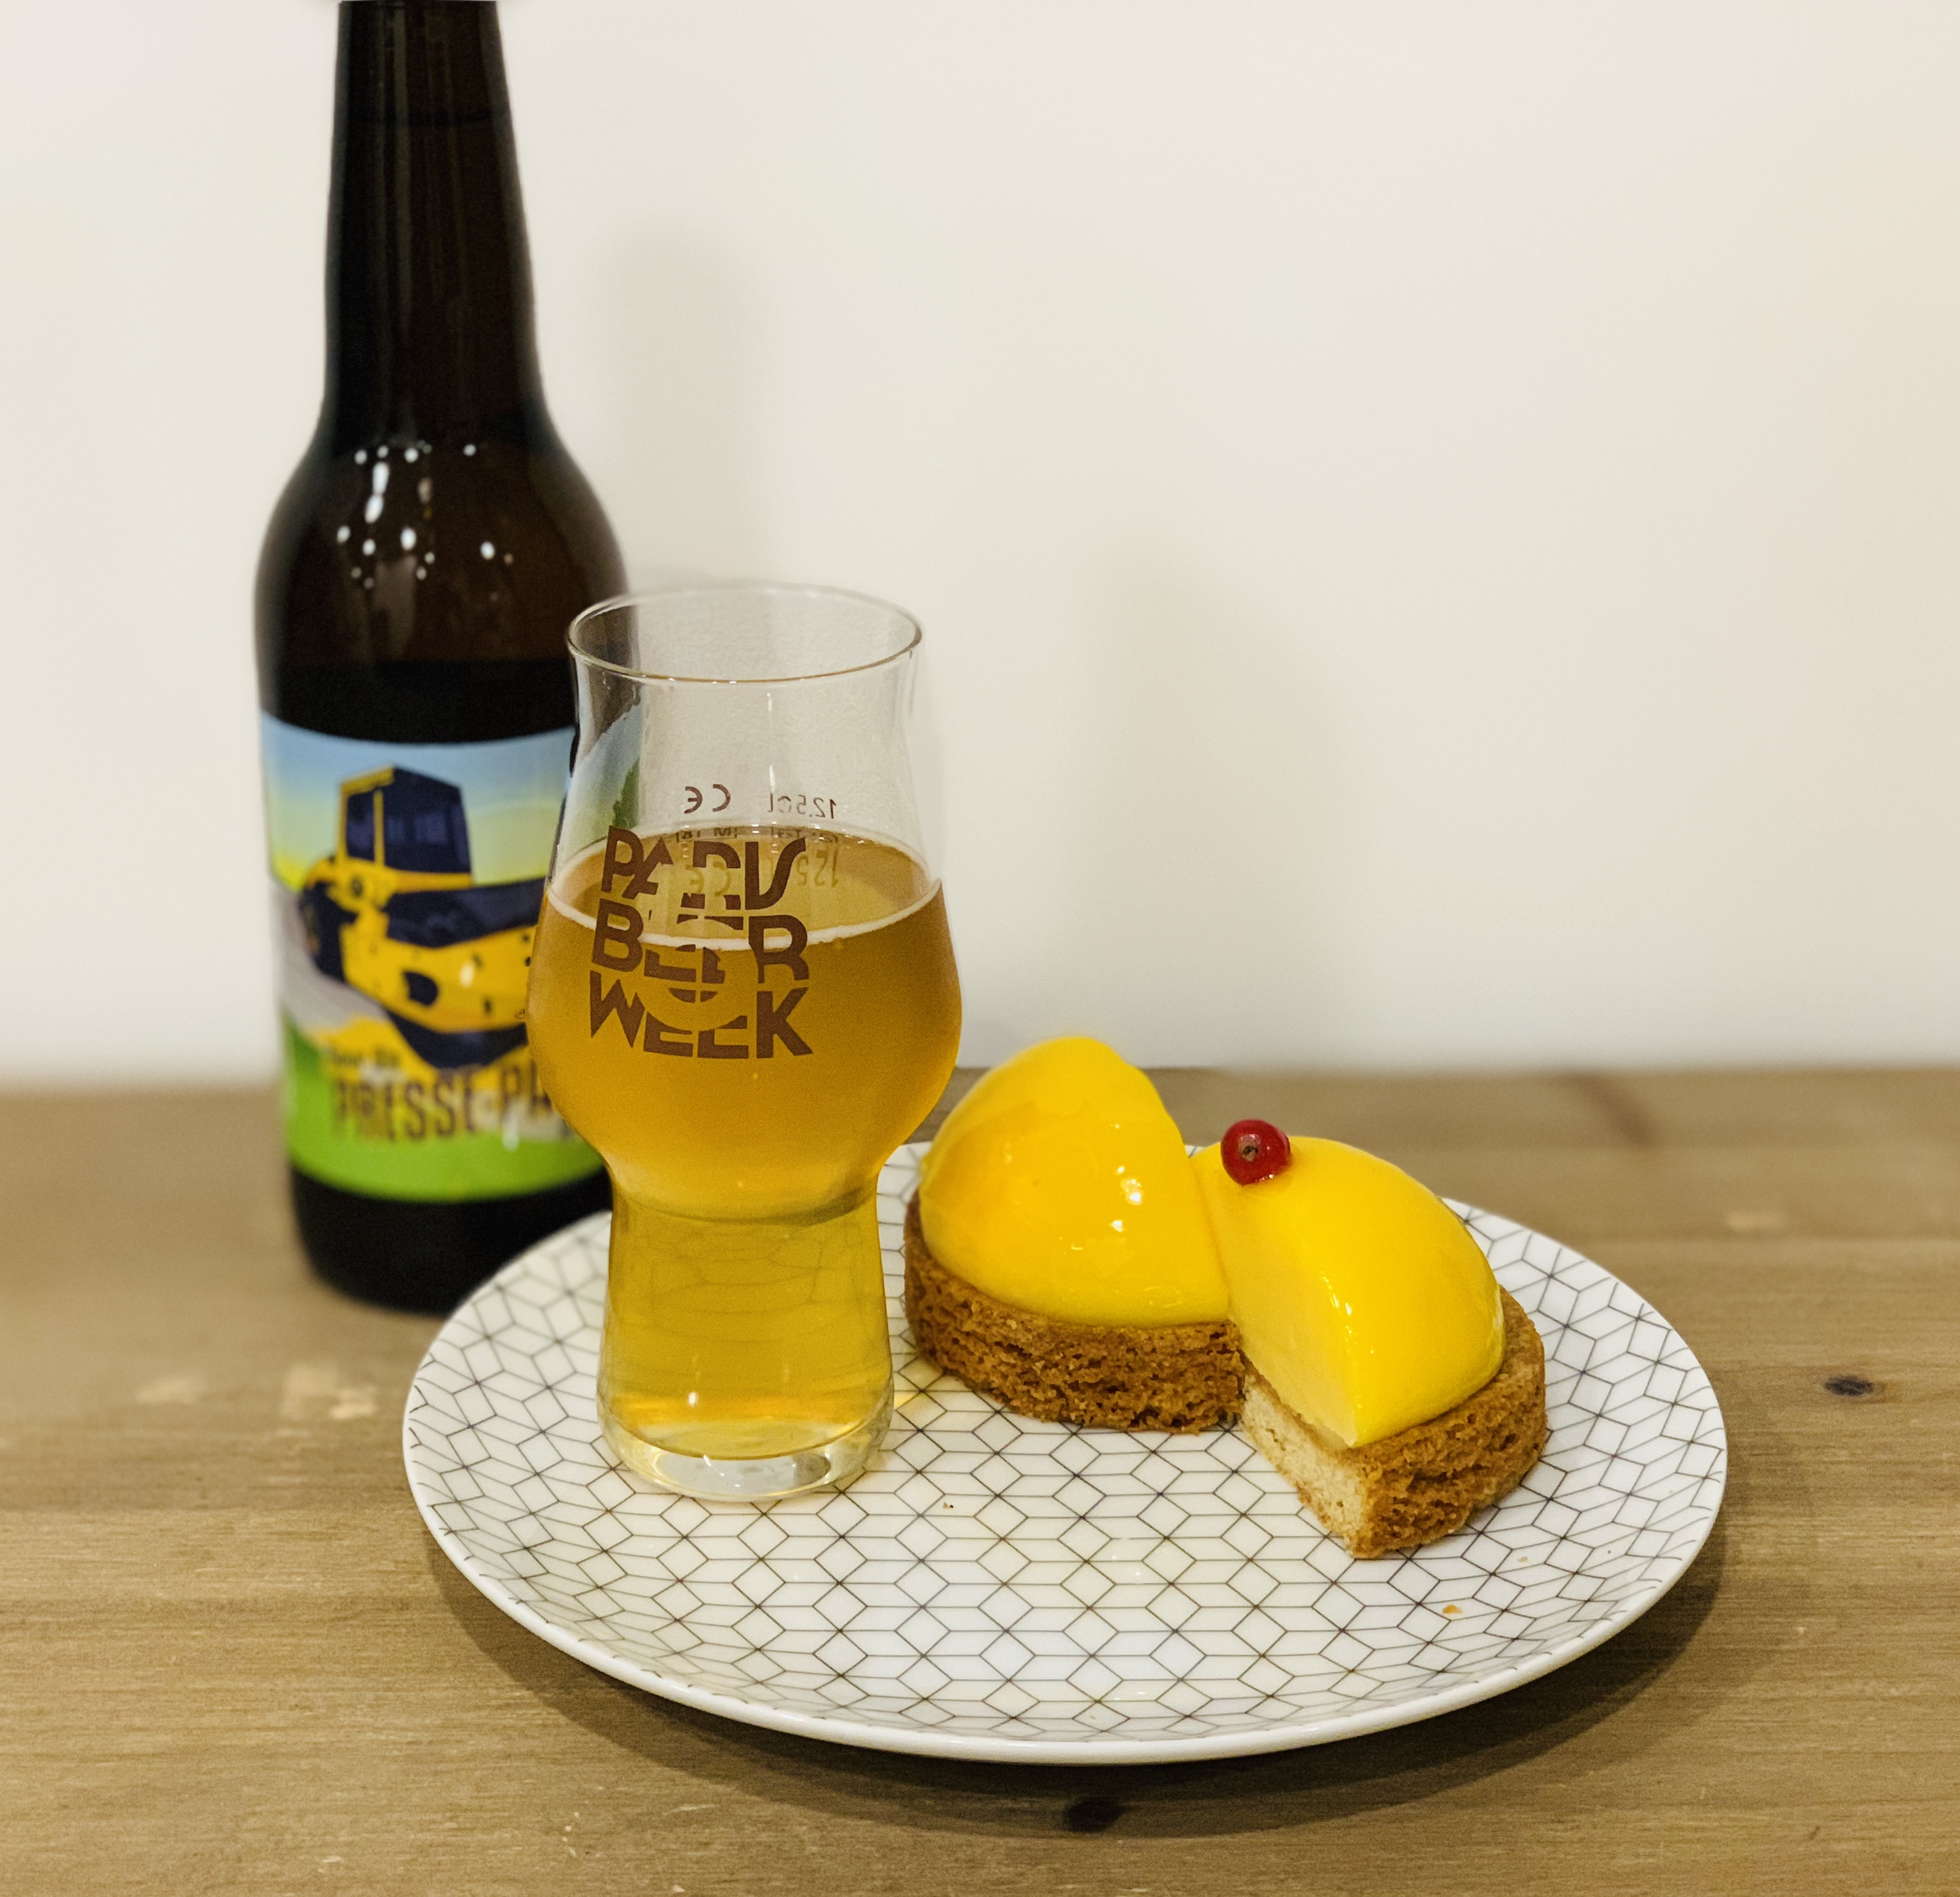 Accord tarte sucrée & bière acide passion